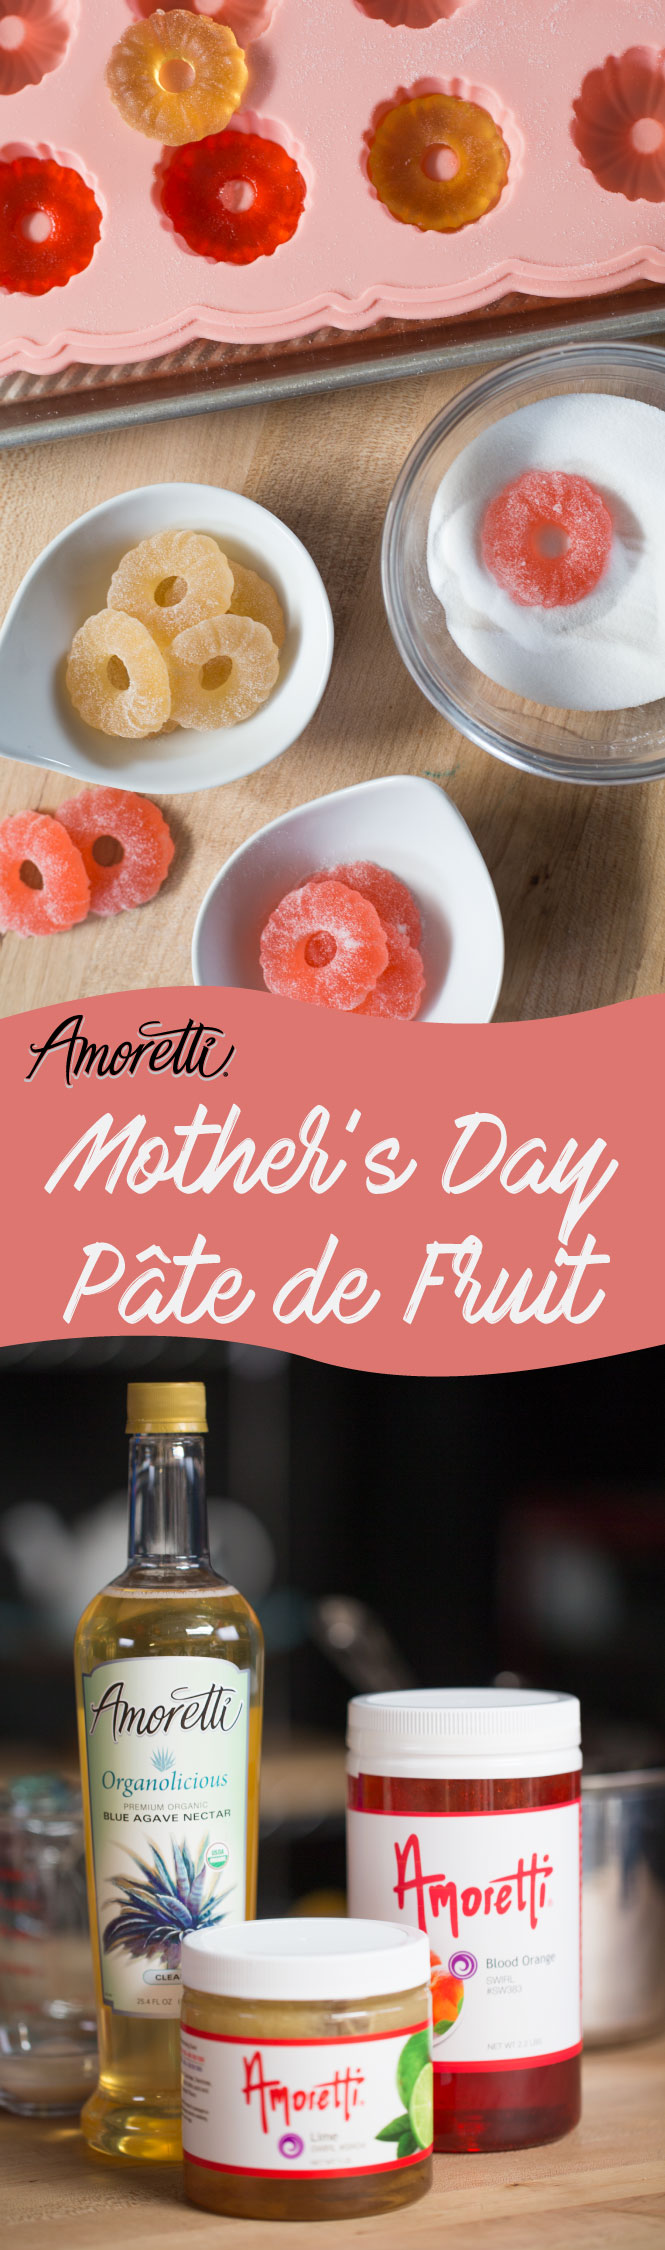 Lime and Blood Orange Pâte de Fruit are colorful, fruity, and oh so soft and chewy!